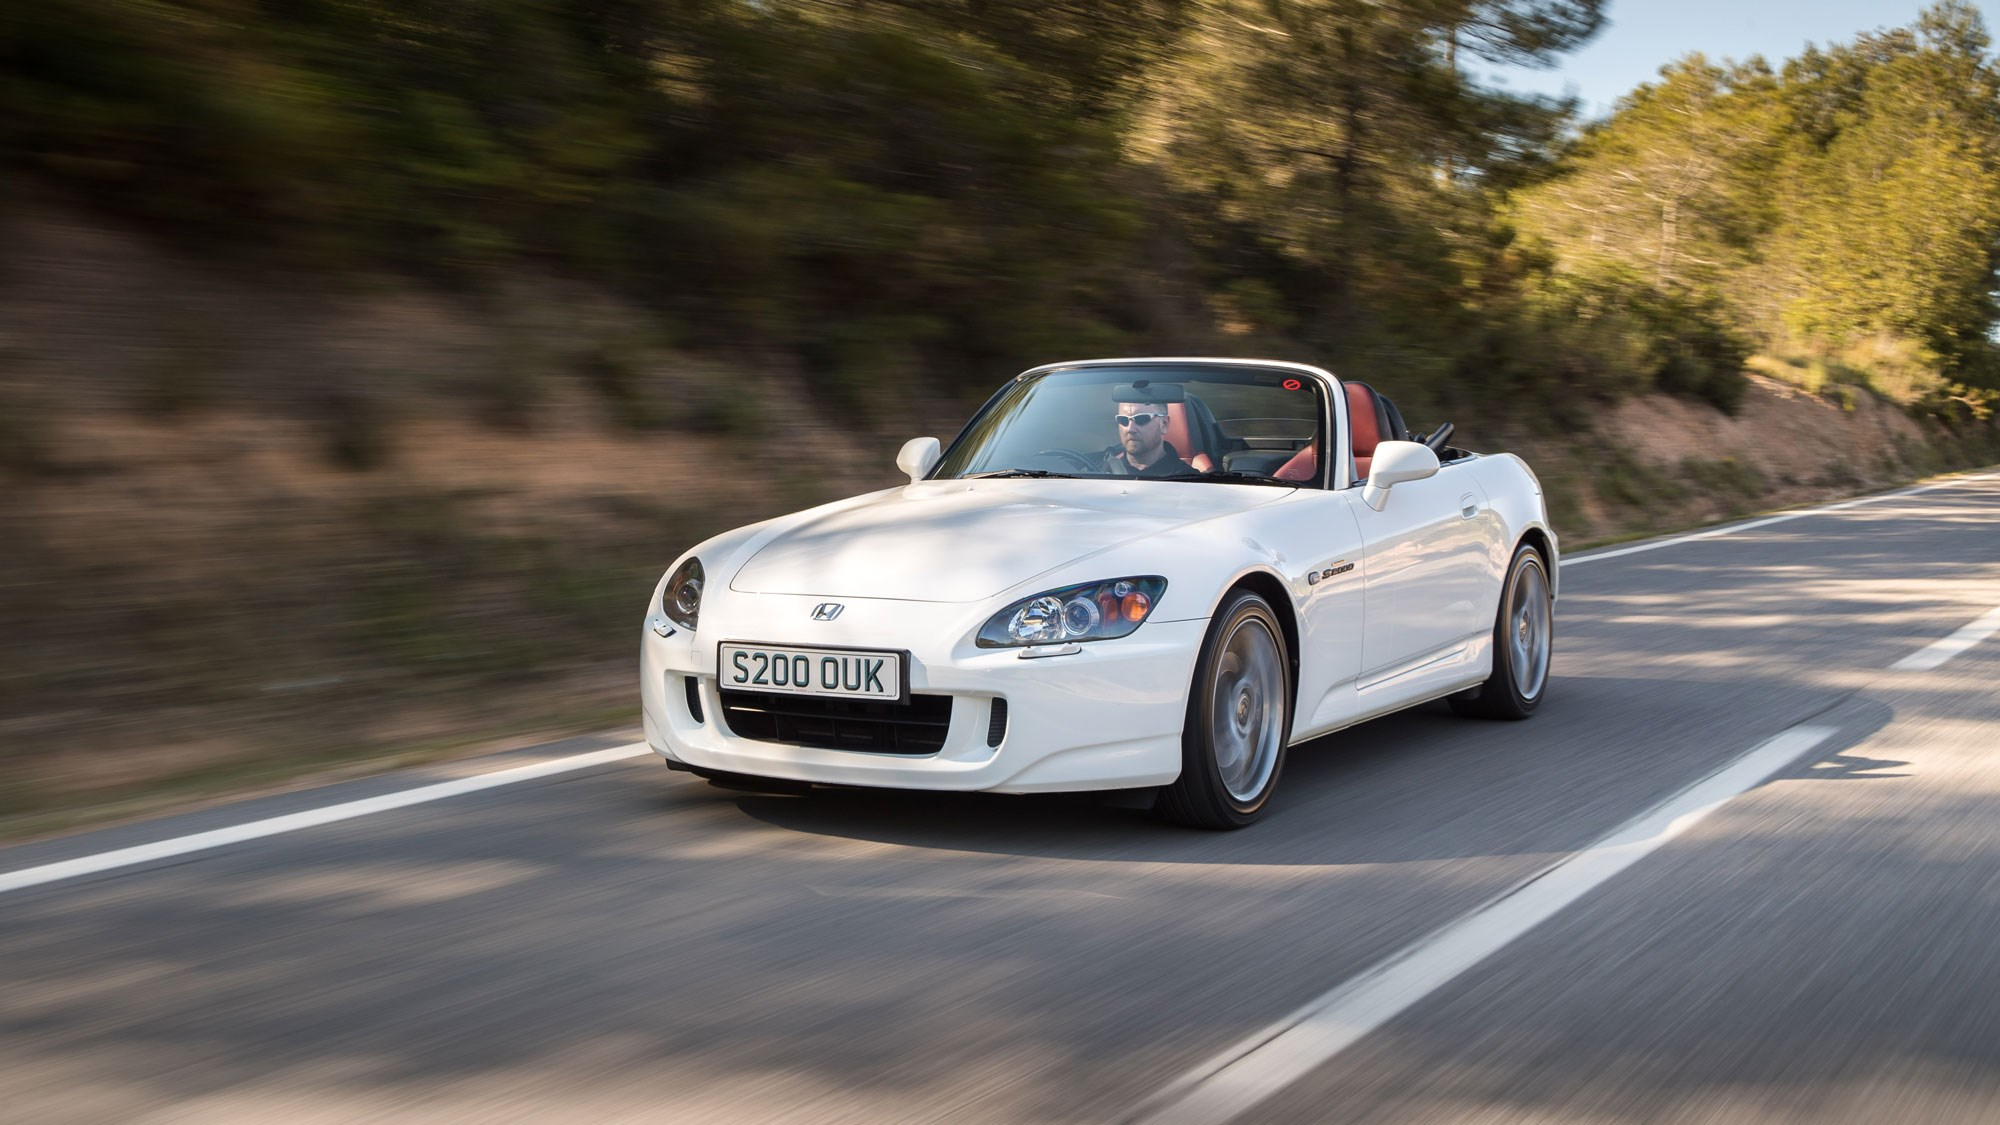 Driving The Clics Revaholic Honda S2000